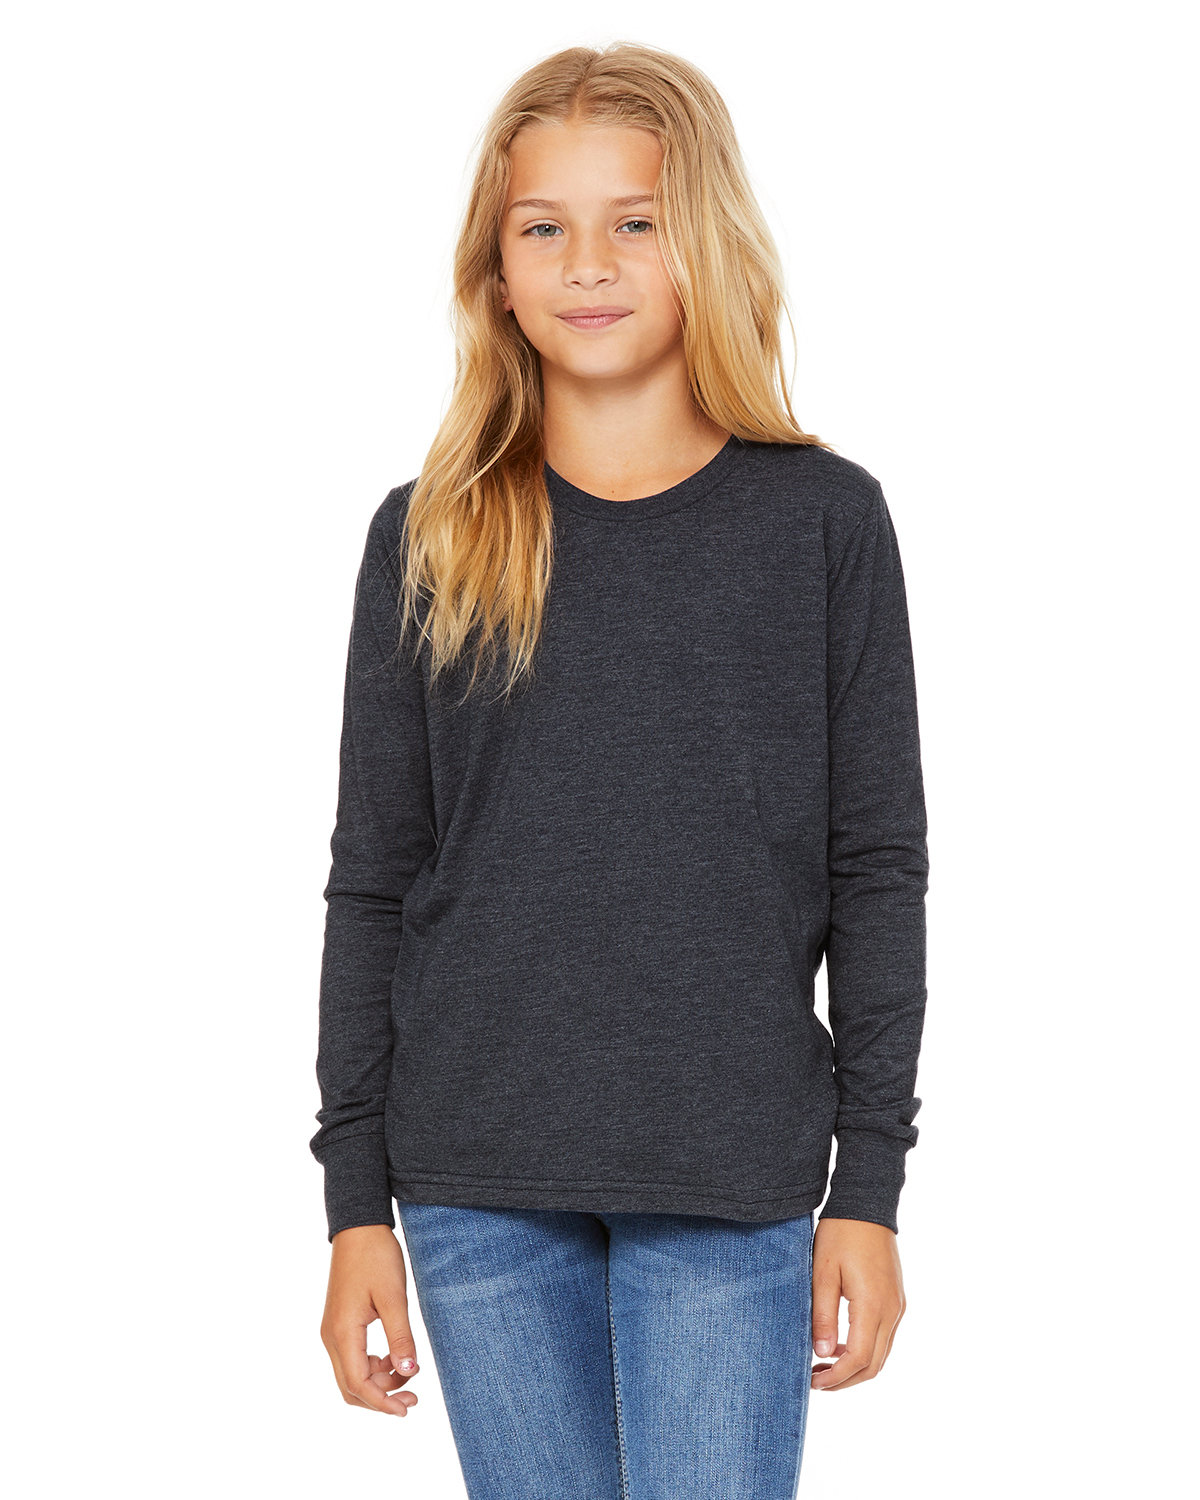 Bella + Canvas Youth Jersey Long-Sleeve T-Shirt HEATHER NAVY